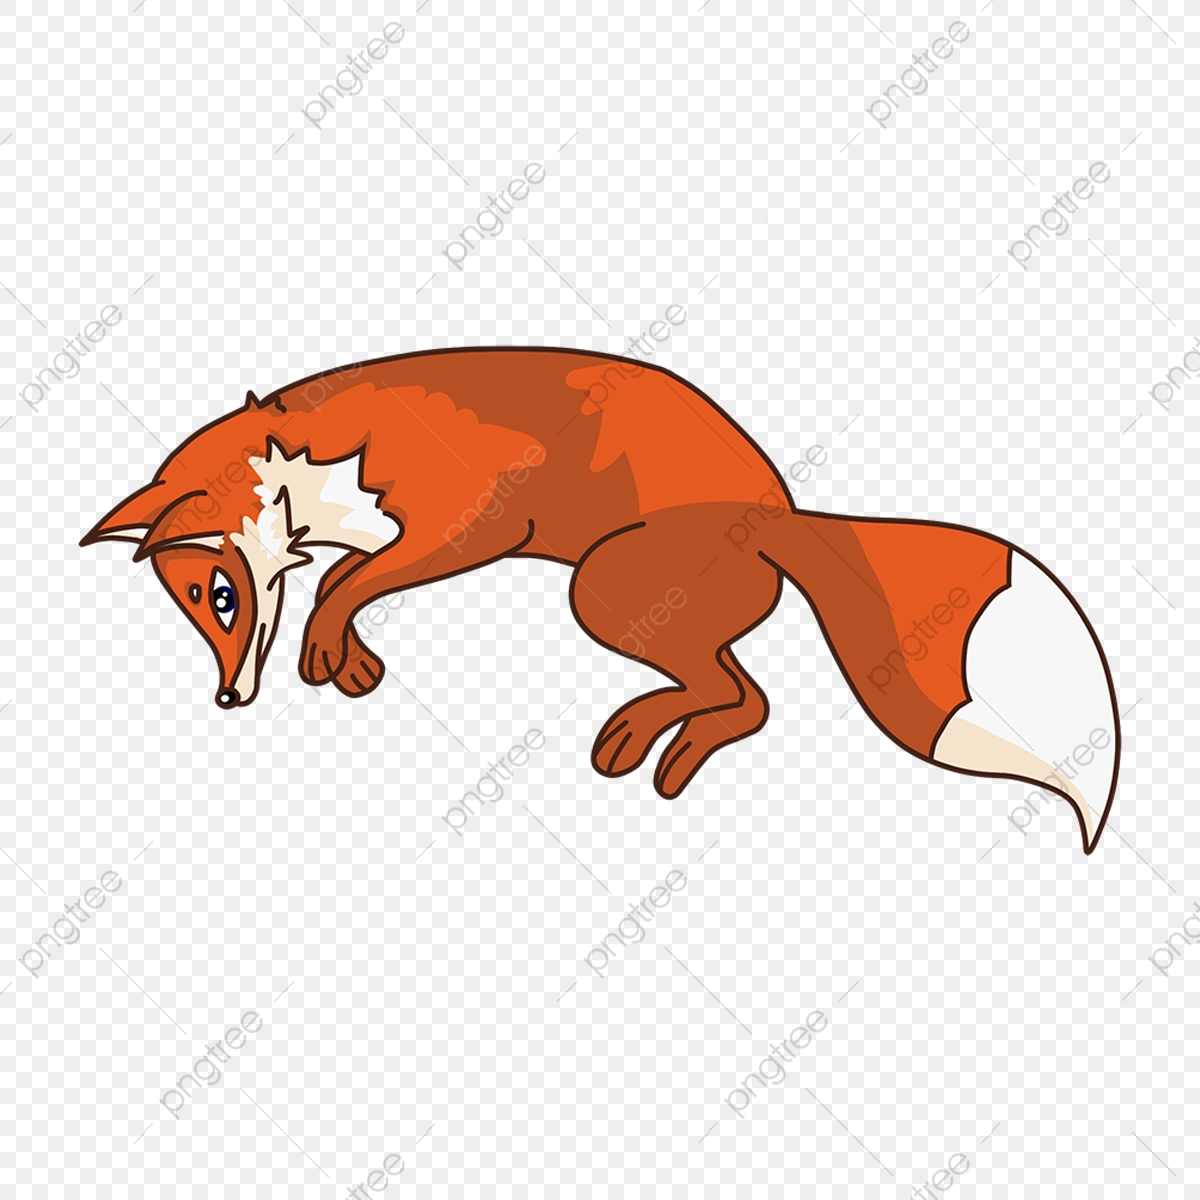 Fox Jumping Fox Clipart Clip Art Fox Png Transparent Clipart Image And Psd File For Free Download